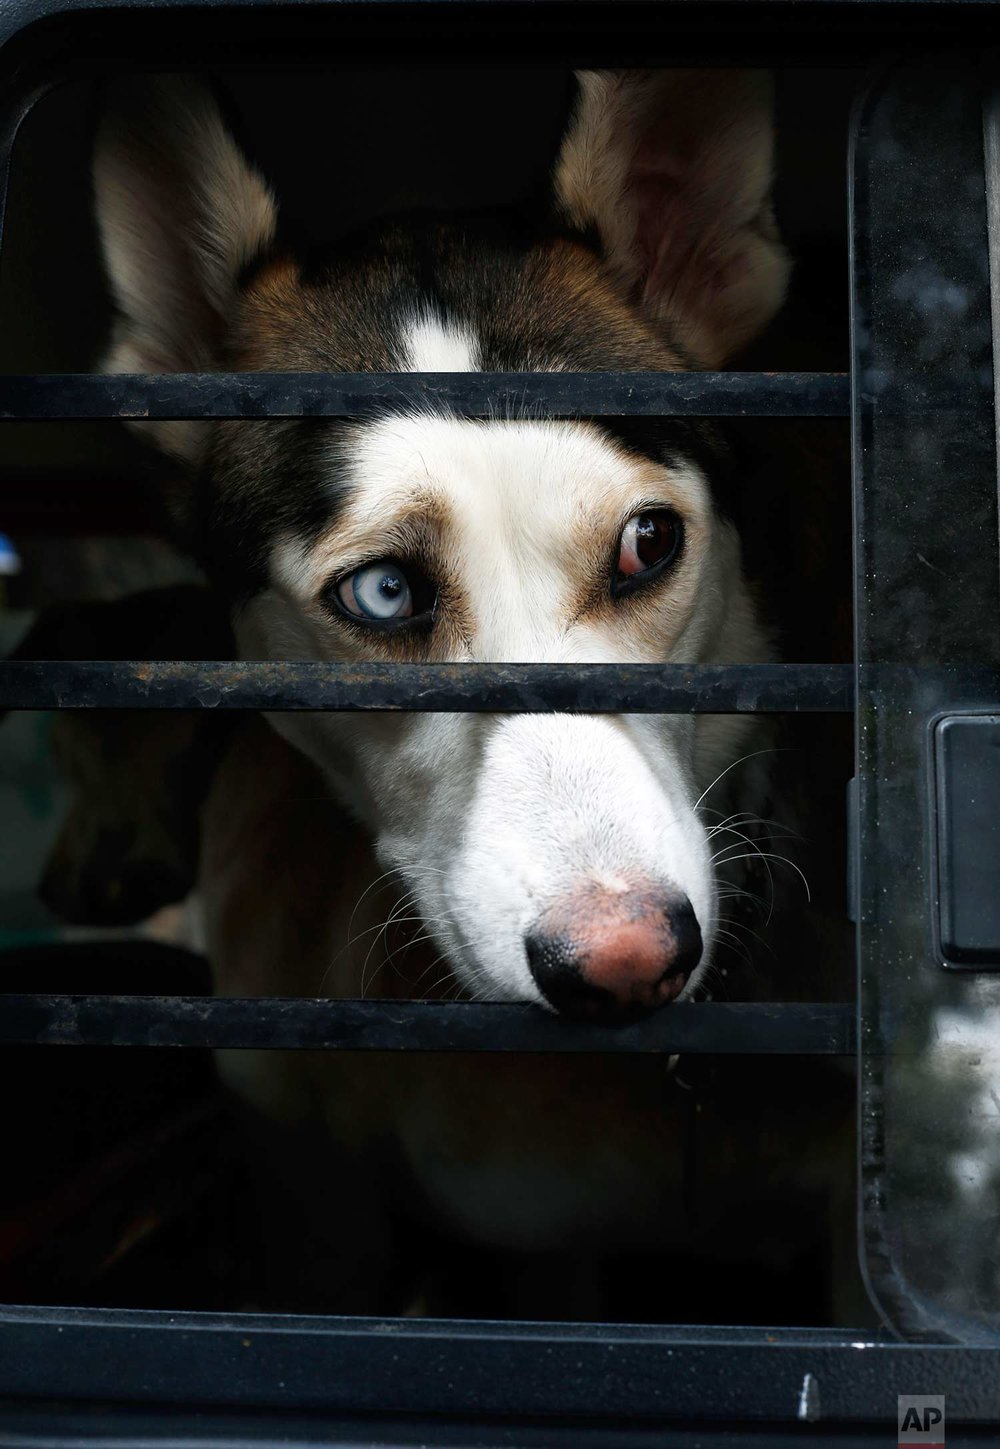 In this Wednesday, Dec. 24, 2017 photo, Ash the dog looks out a window from the family Volkswagen van before a trip, in Mexico City. Ash is one of dozens of dogs that are taken care of by Jair Benavides and Mariam Gutierrez de Velasco at their shelter in Mexico City. (AP Photo/Marco Ugarte)